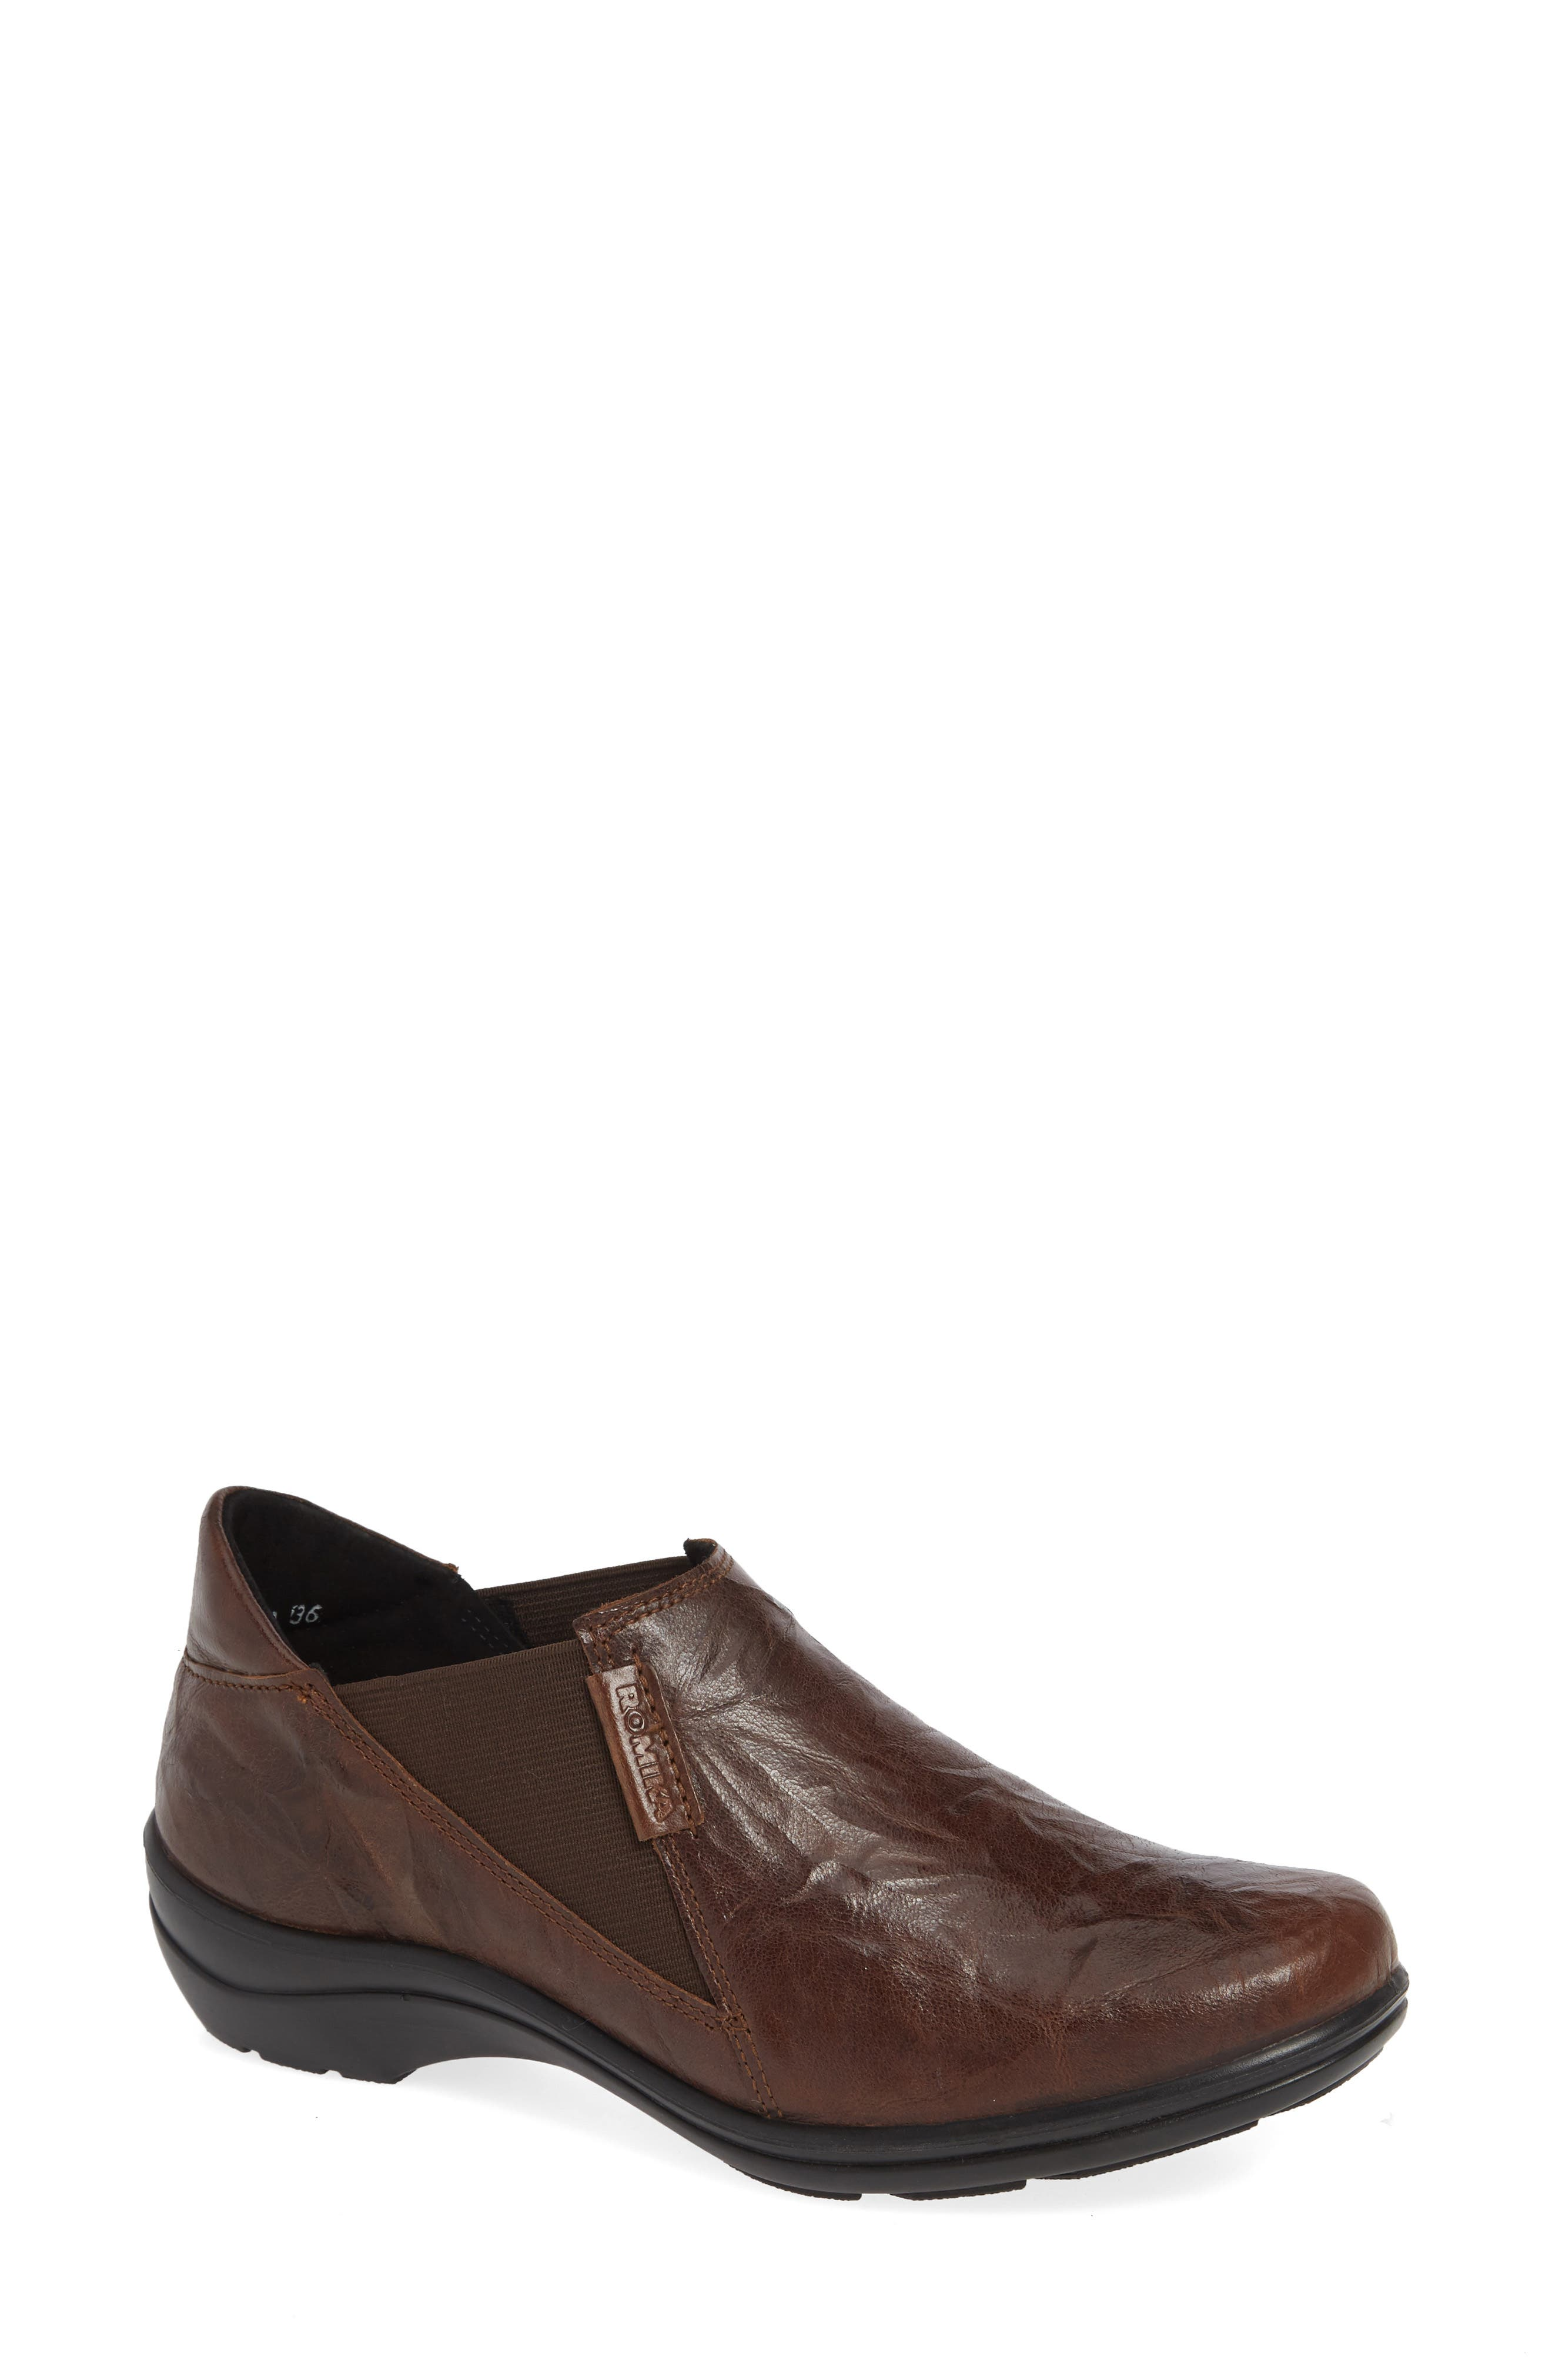 Cassie 44 Ankle Bootie,                         Main,                         color, MORO BO BROWN